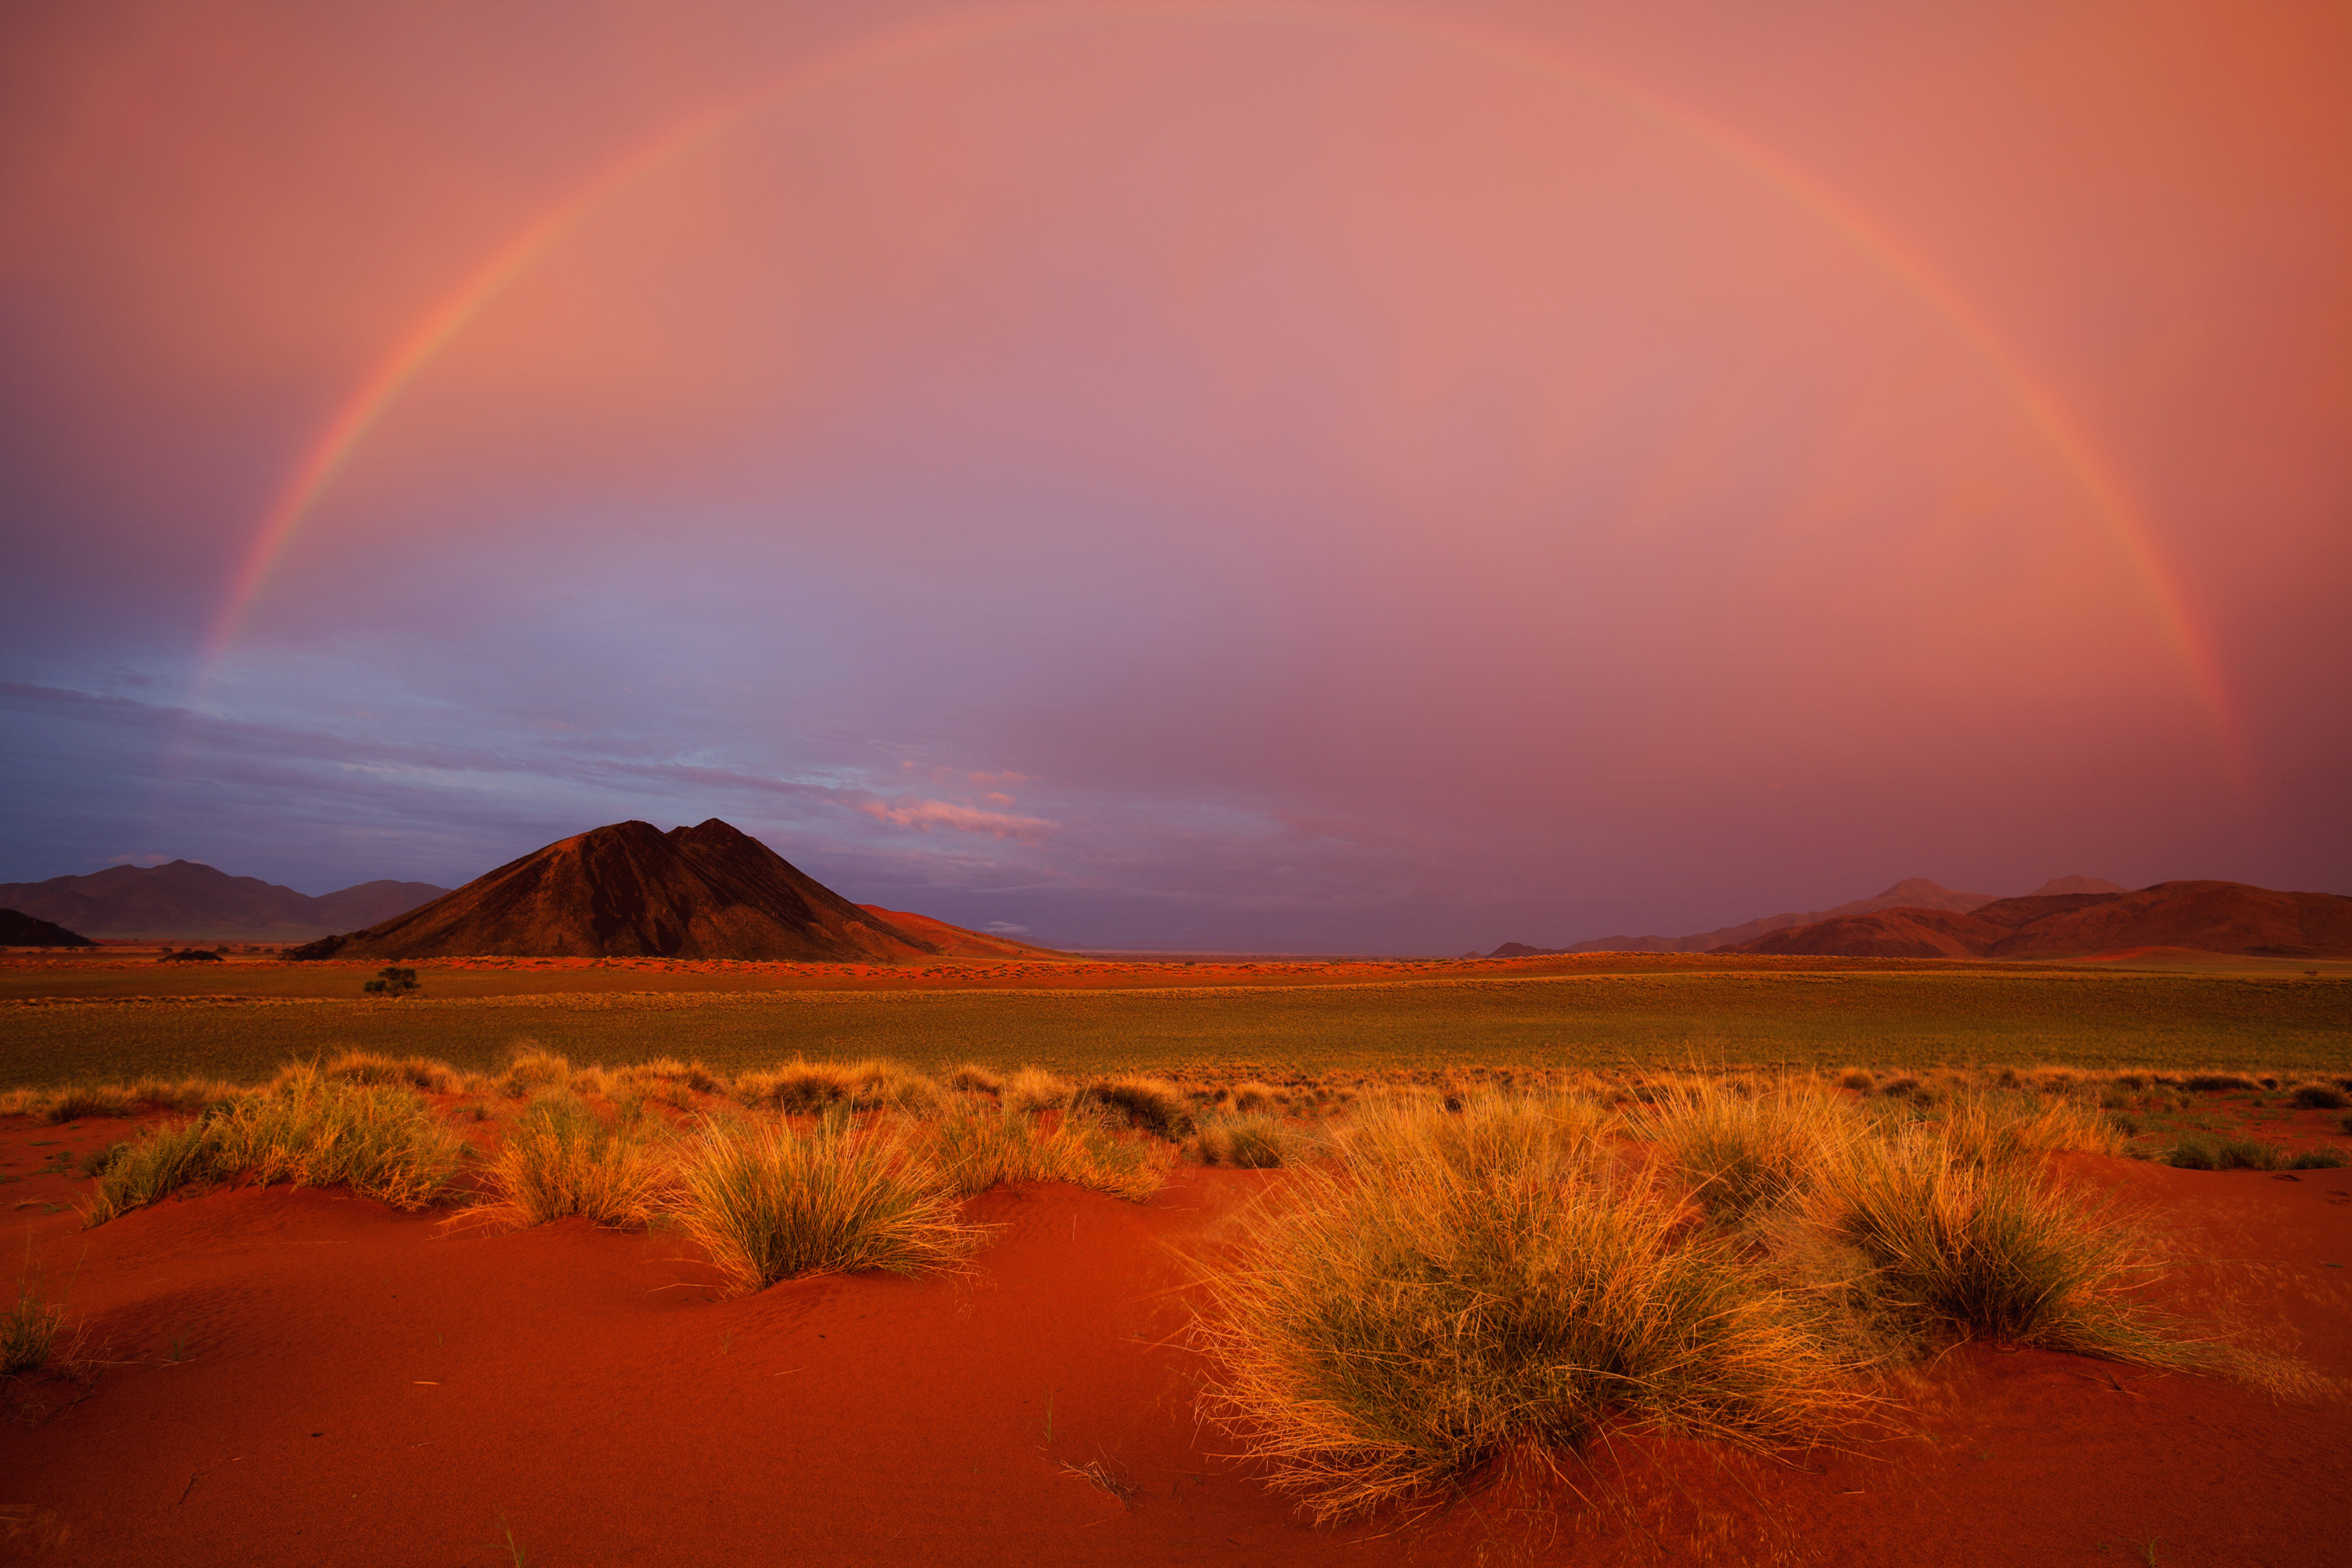 Rainbow over the Namib